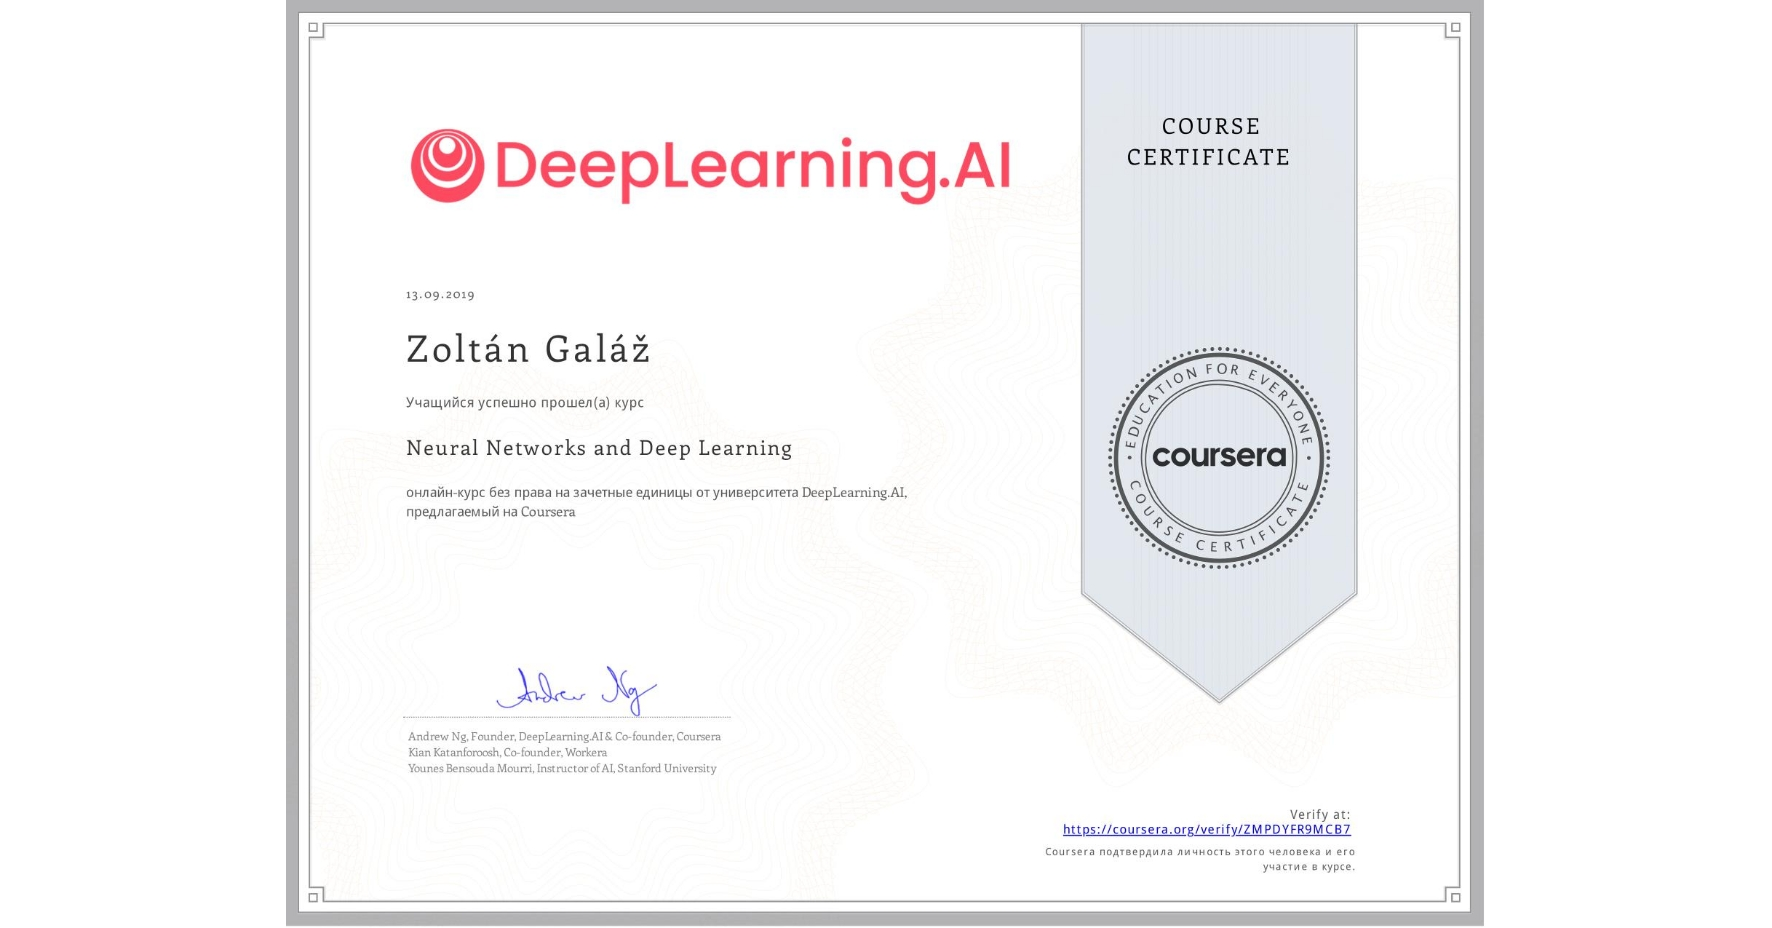 View certificate for Zoltán Galáž, Neural Networks and Deep Learning, an online non-credit course authorized by DeepLearning.AI and offered through Coursera